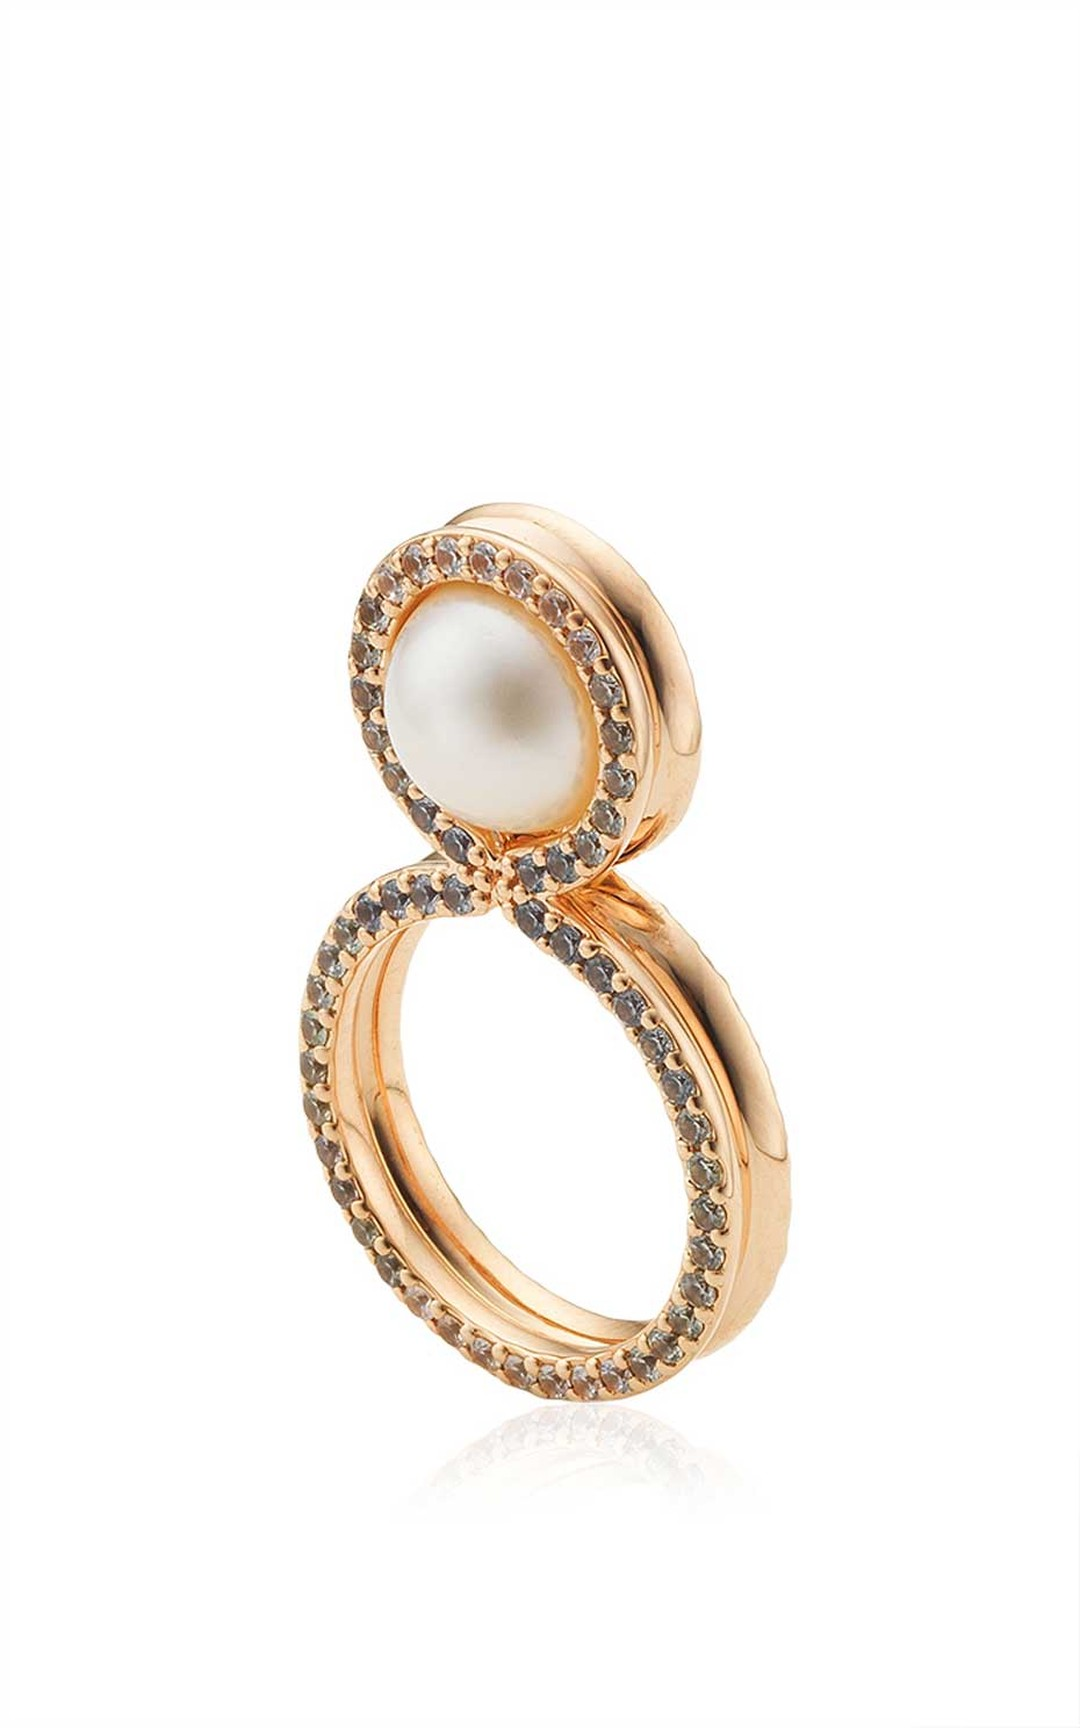 Melanie Georgacopoulos' Glow 8 Ring in 18ct rose gold with sapphires and 10mm white fresh water pearl.